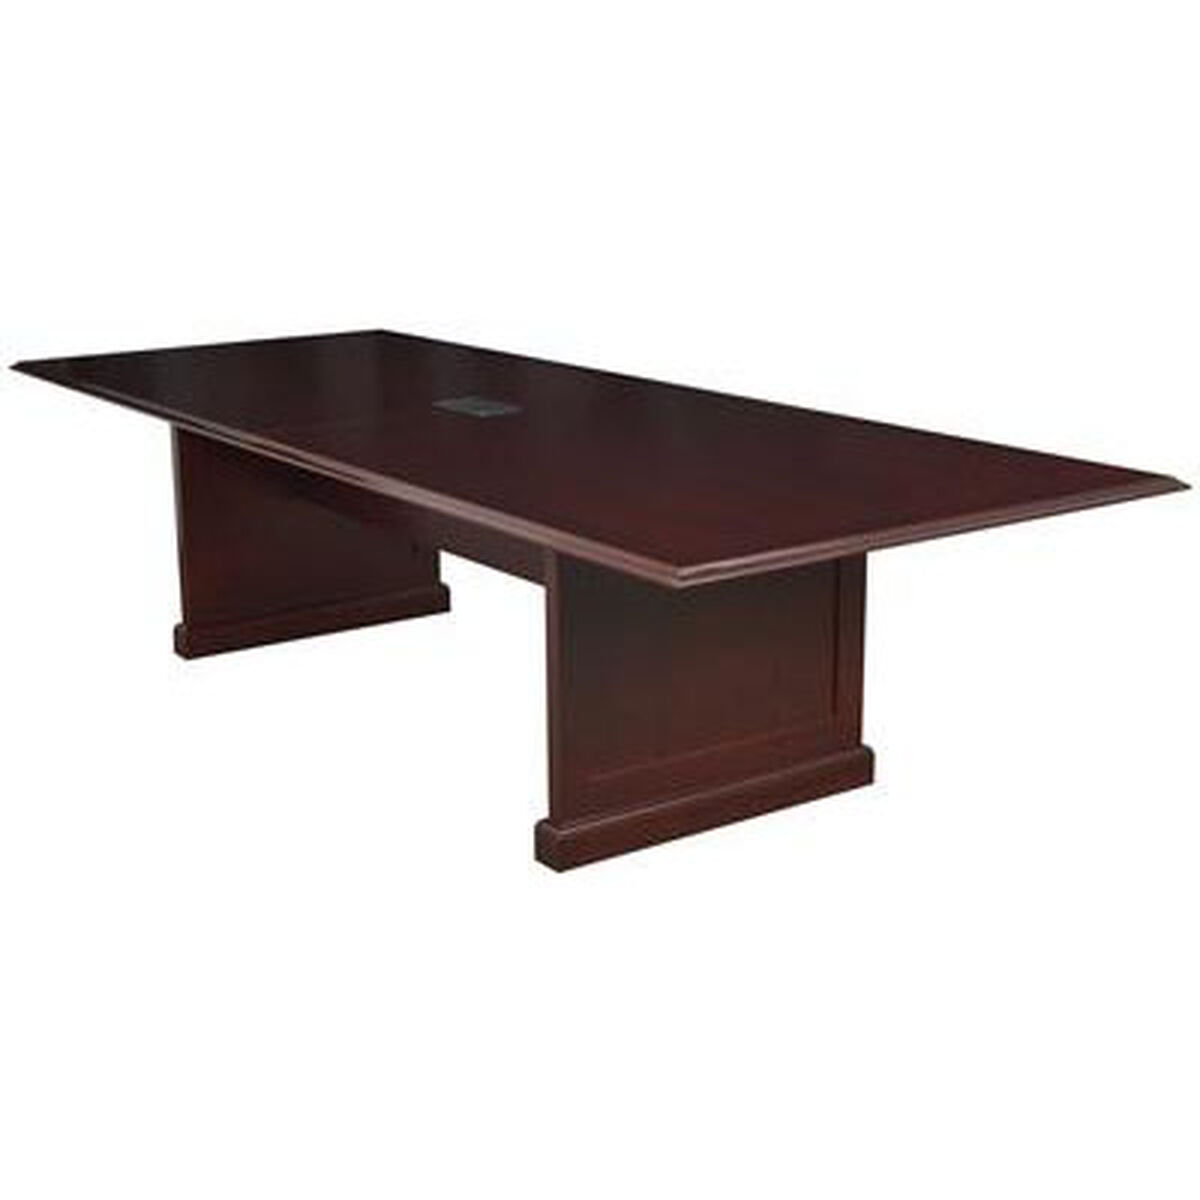 Conference Table With Power TVCTRCMH SchoolFurnitureLesscom - 144 conference table